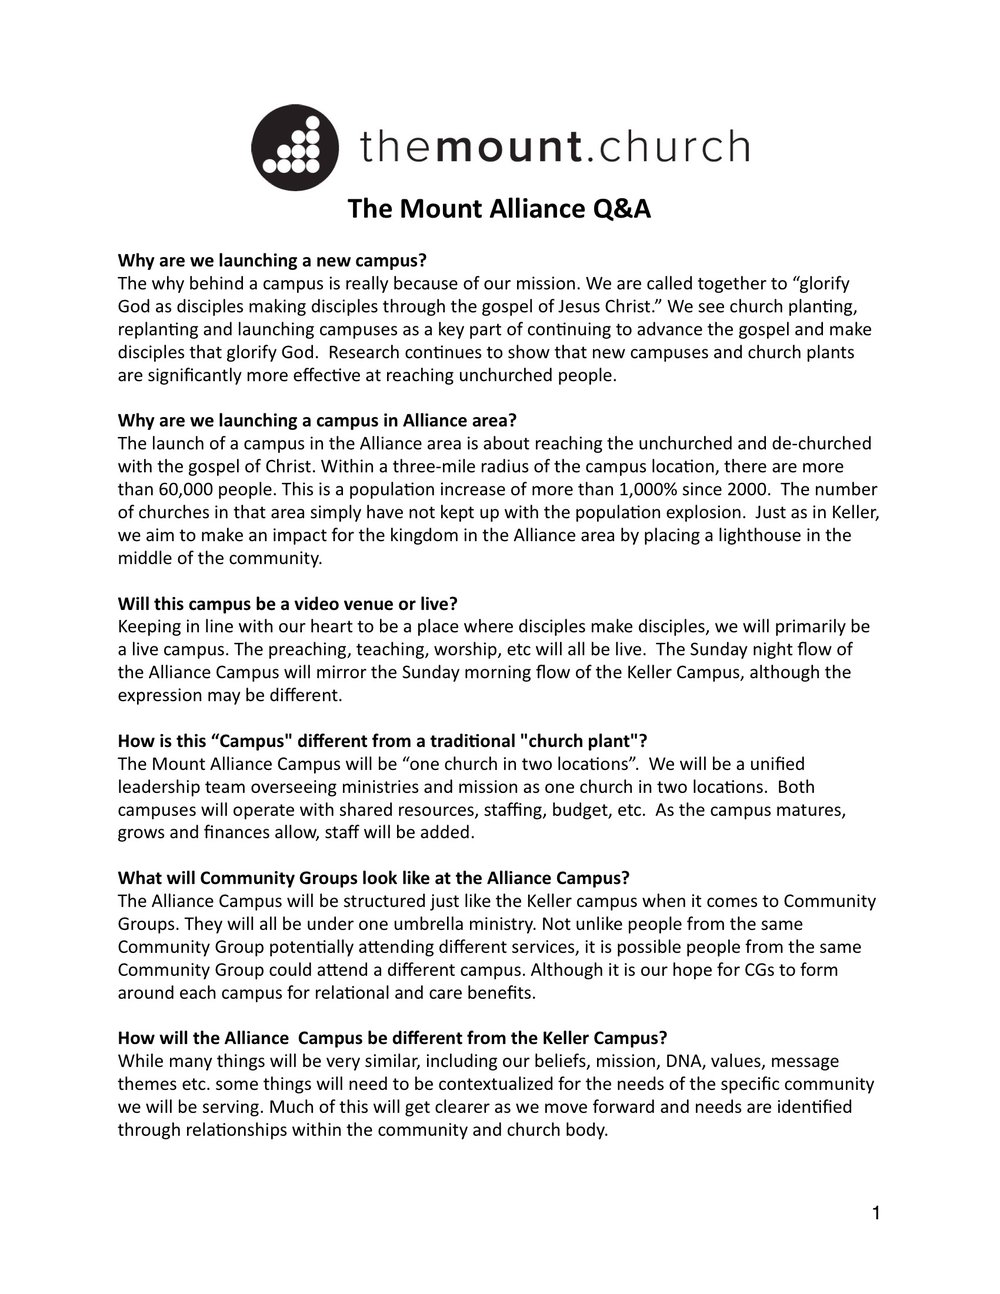 Alliance Q&A,pg 1 - CLICK IMAGE TO ENLARGE